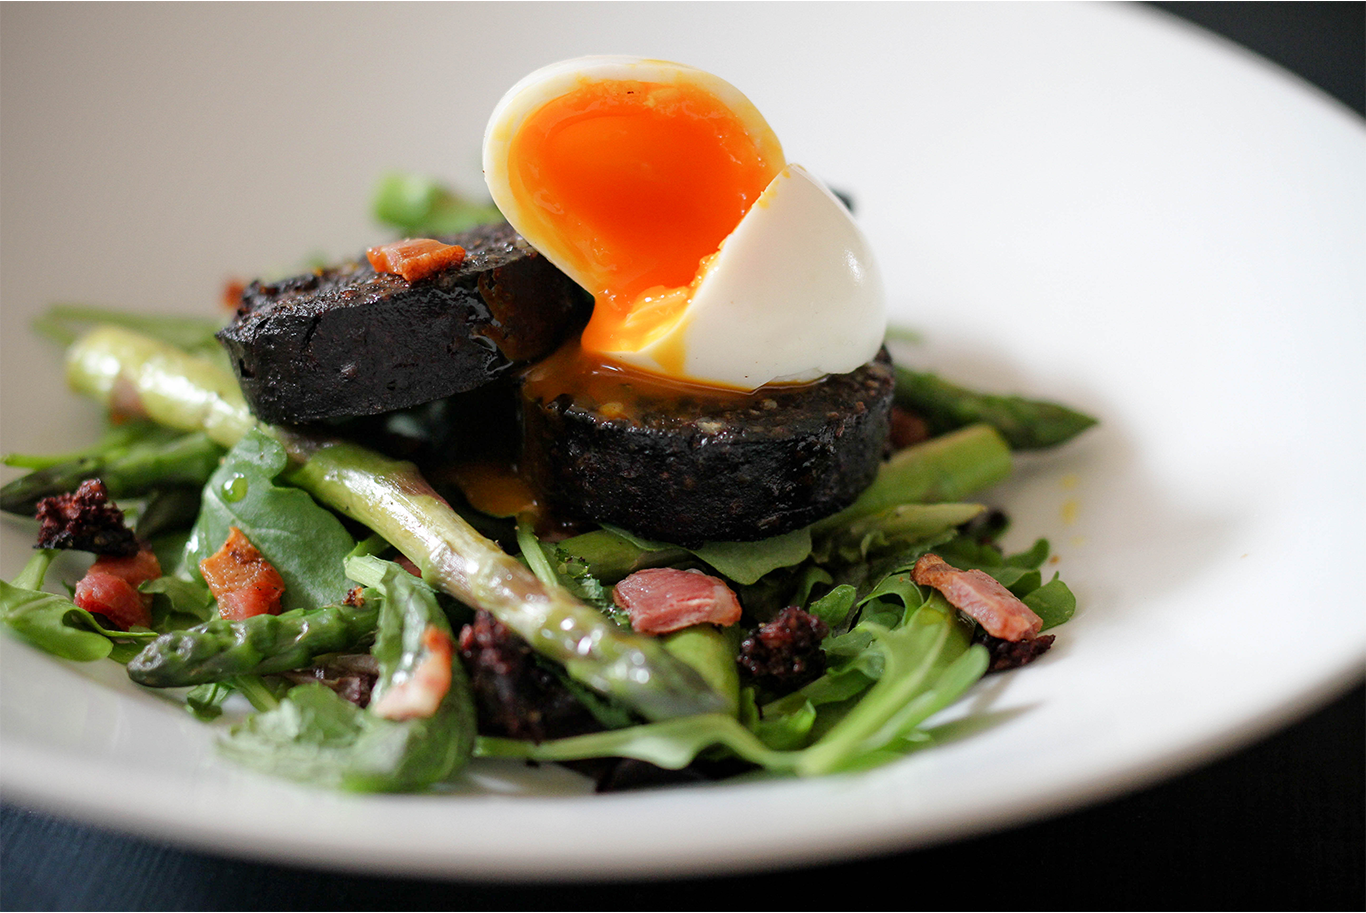 black pudding on a bed of salad and asparagus topped with a boiled egg